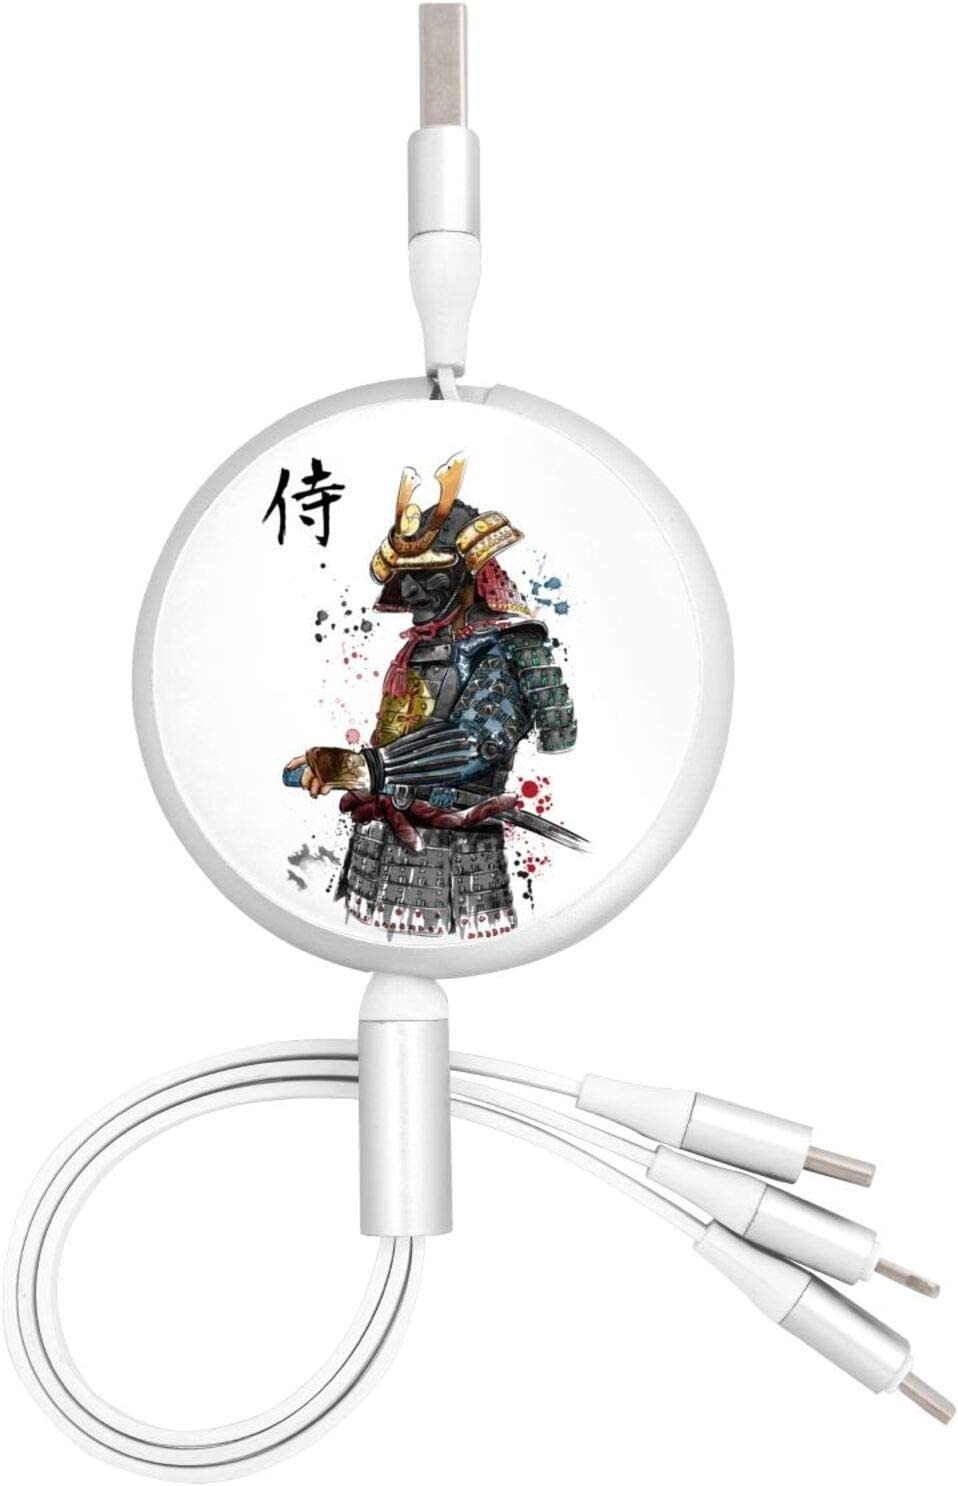 Kitsune Fox Kamen Rider 3 in 1 Retractable Multiple Charging Cable 3.0a Fast Charger Cord with Phone//Type C//Micro USB Charge Port Adapter Compatible with Cell Phones Tablets and More